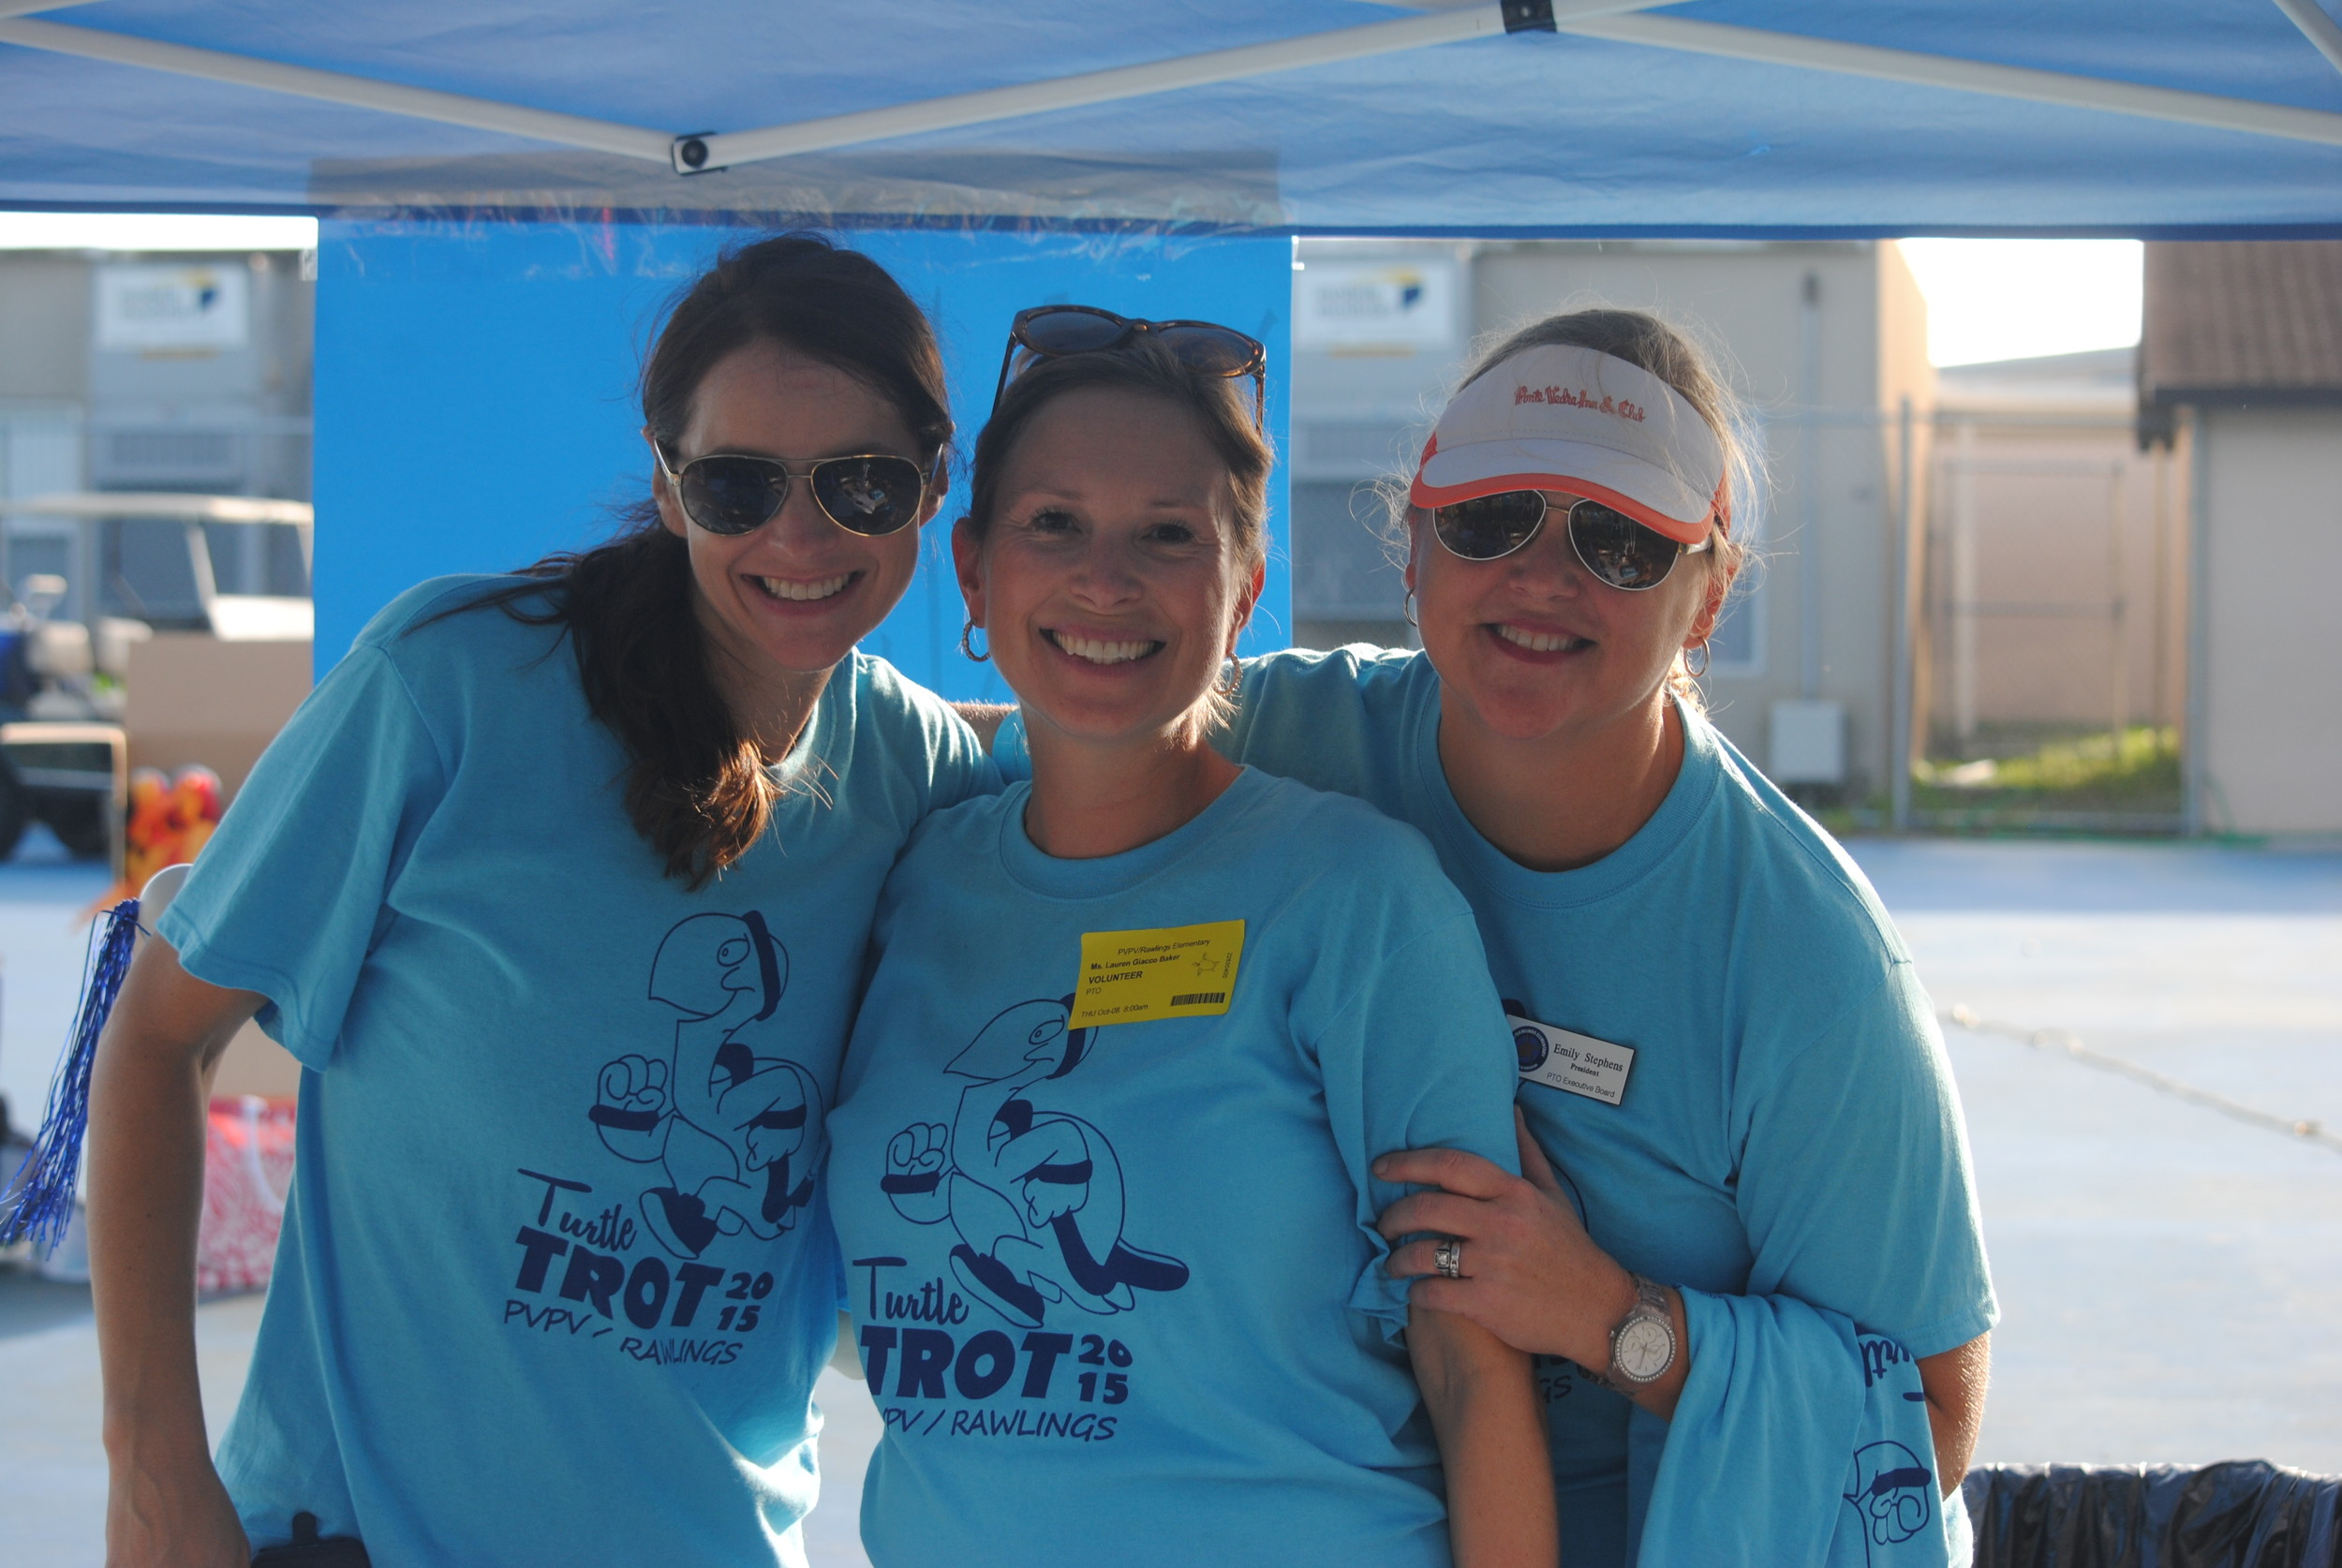 Turtle Trot Co-Chairs Holly Smith and Lauren Baker, and PTO President Emily Stephens.